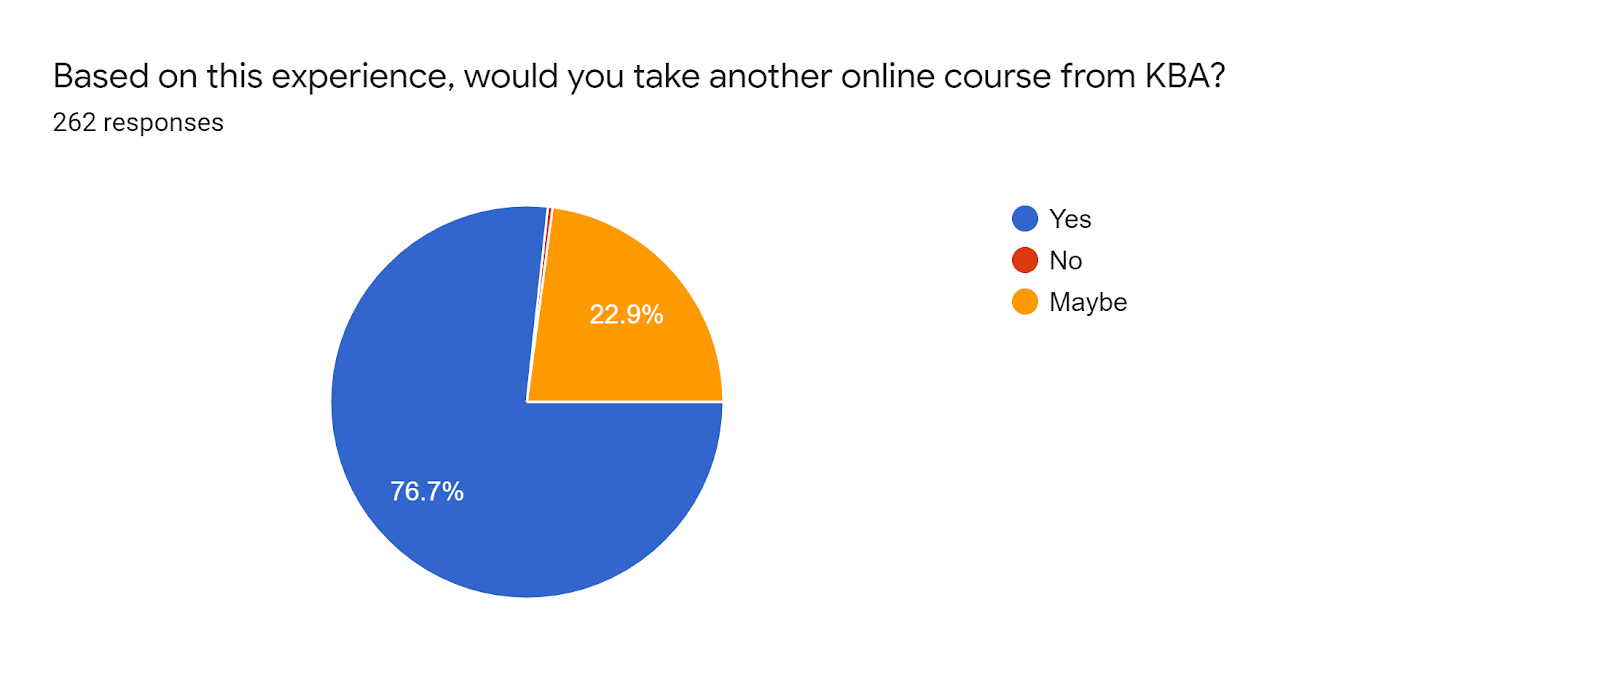 Forms response chart. Question title: Based on this experience, would you take another online course from KBA?. Number of responses: 262 responses.